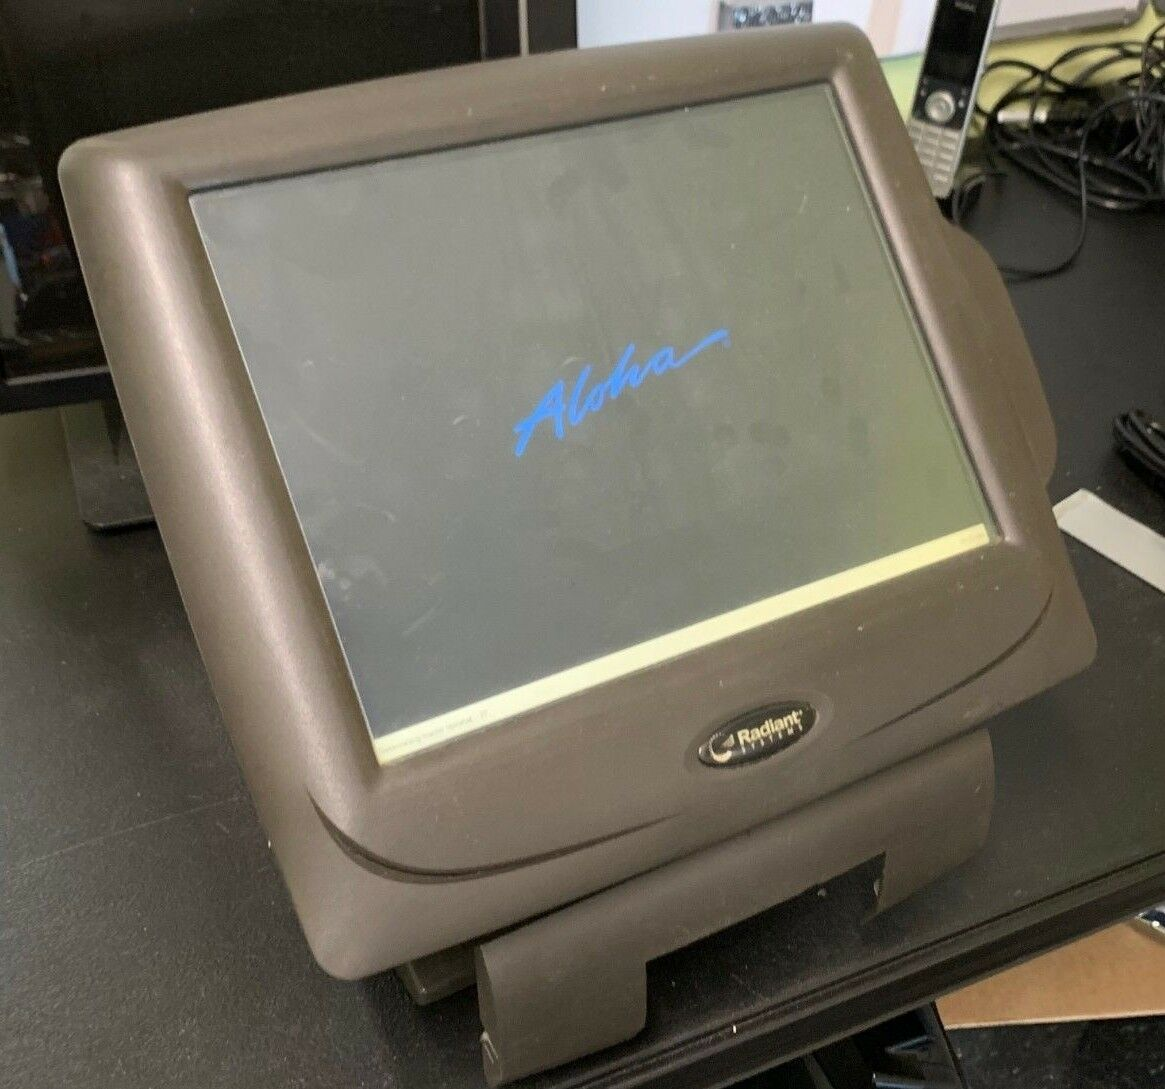 Radiant Systems P1510 POS Point of Sale Touch Terminal P1510-0240 w// Card Reader